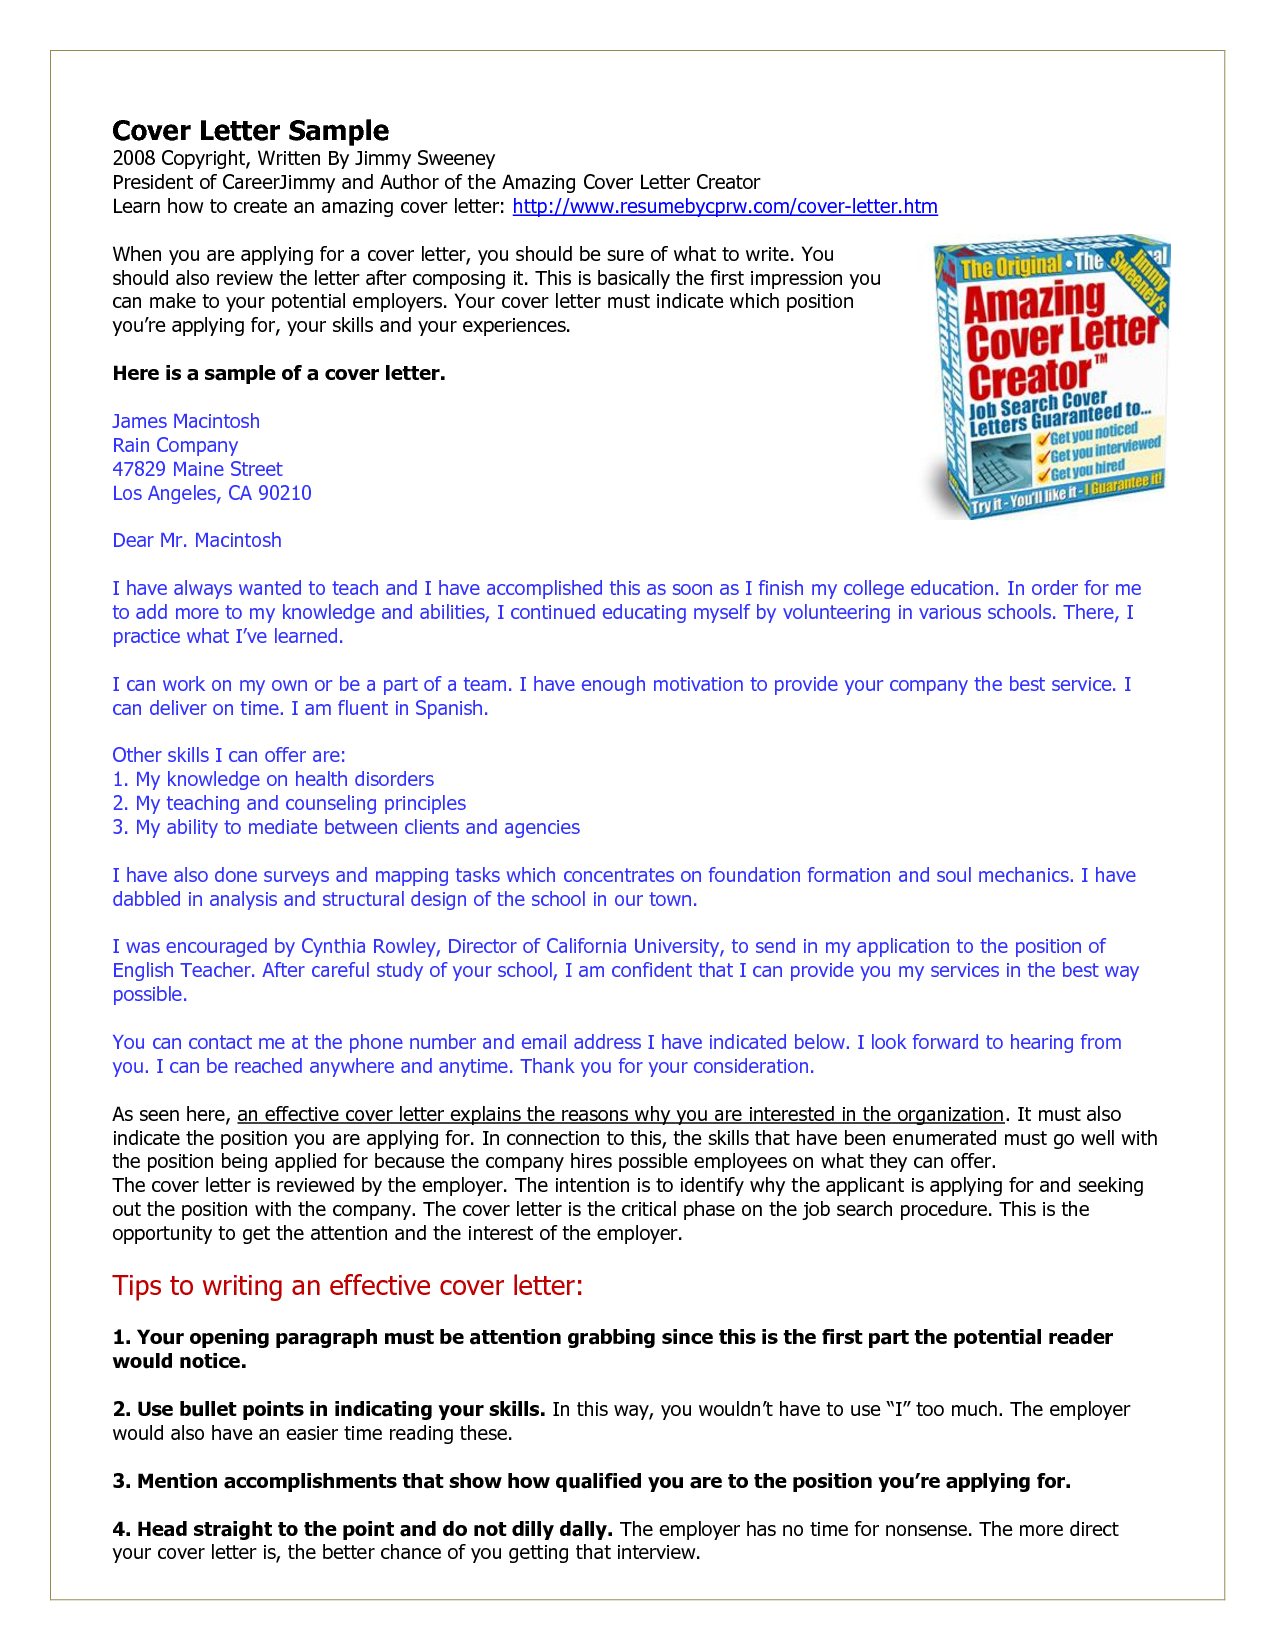 Do you know how to get amazing cover letters pouted for Jim sweeney cover letter